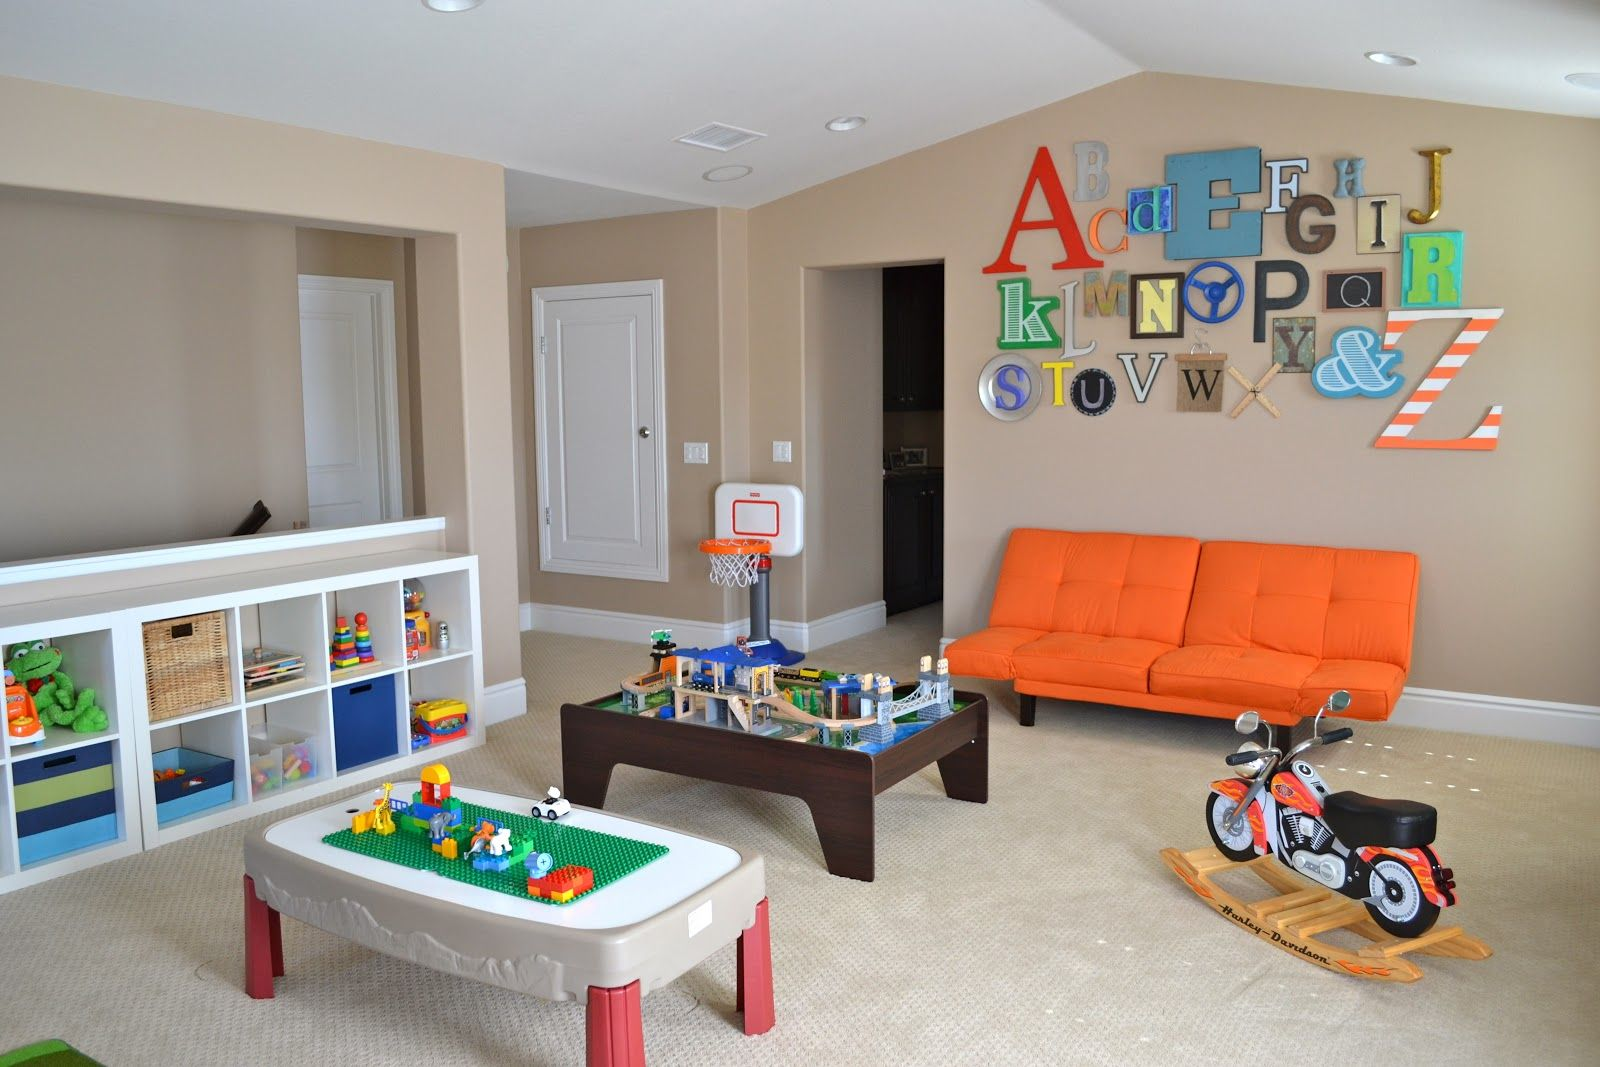 Playroom Ideas For Kids Kids Playroom Ideas  Google Search Love The Letters On The Wall